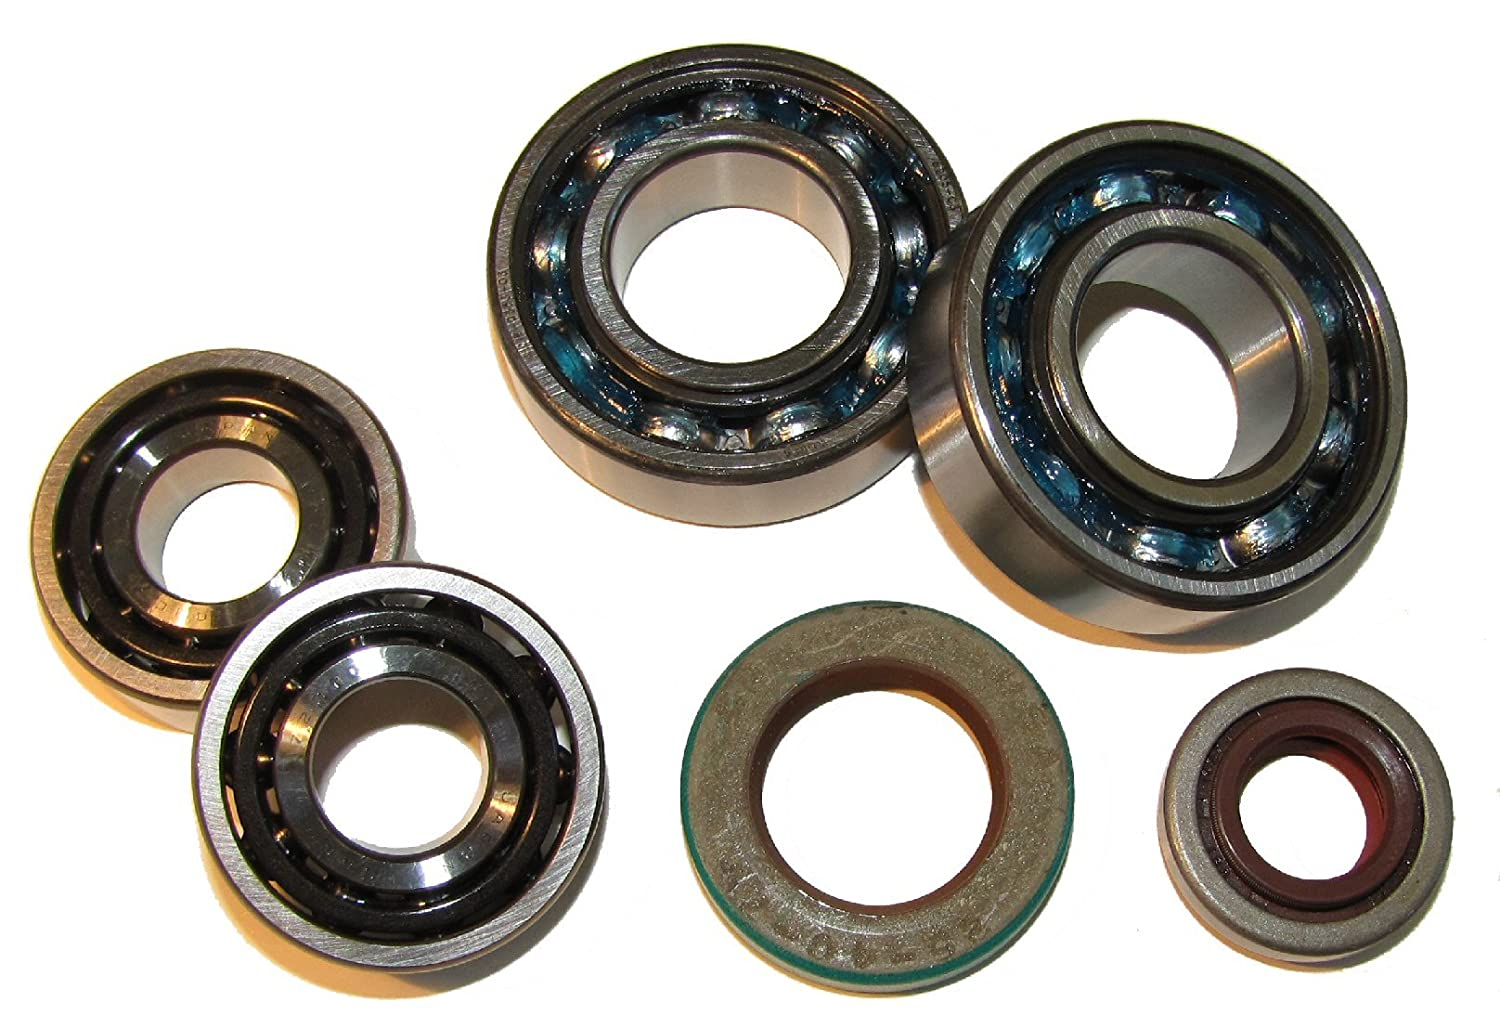 Si trim and TRD Models Complete Standard Rebuild Kit #1 for Vortech V1 S trim or V2 S